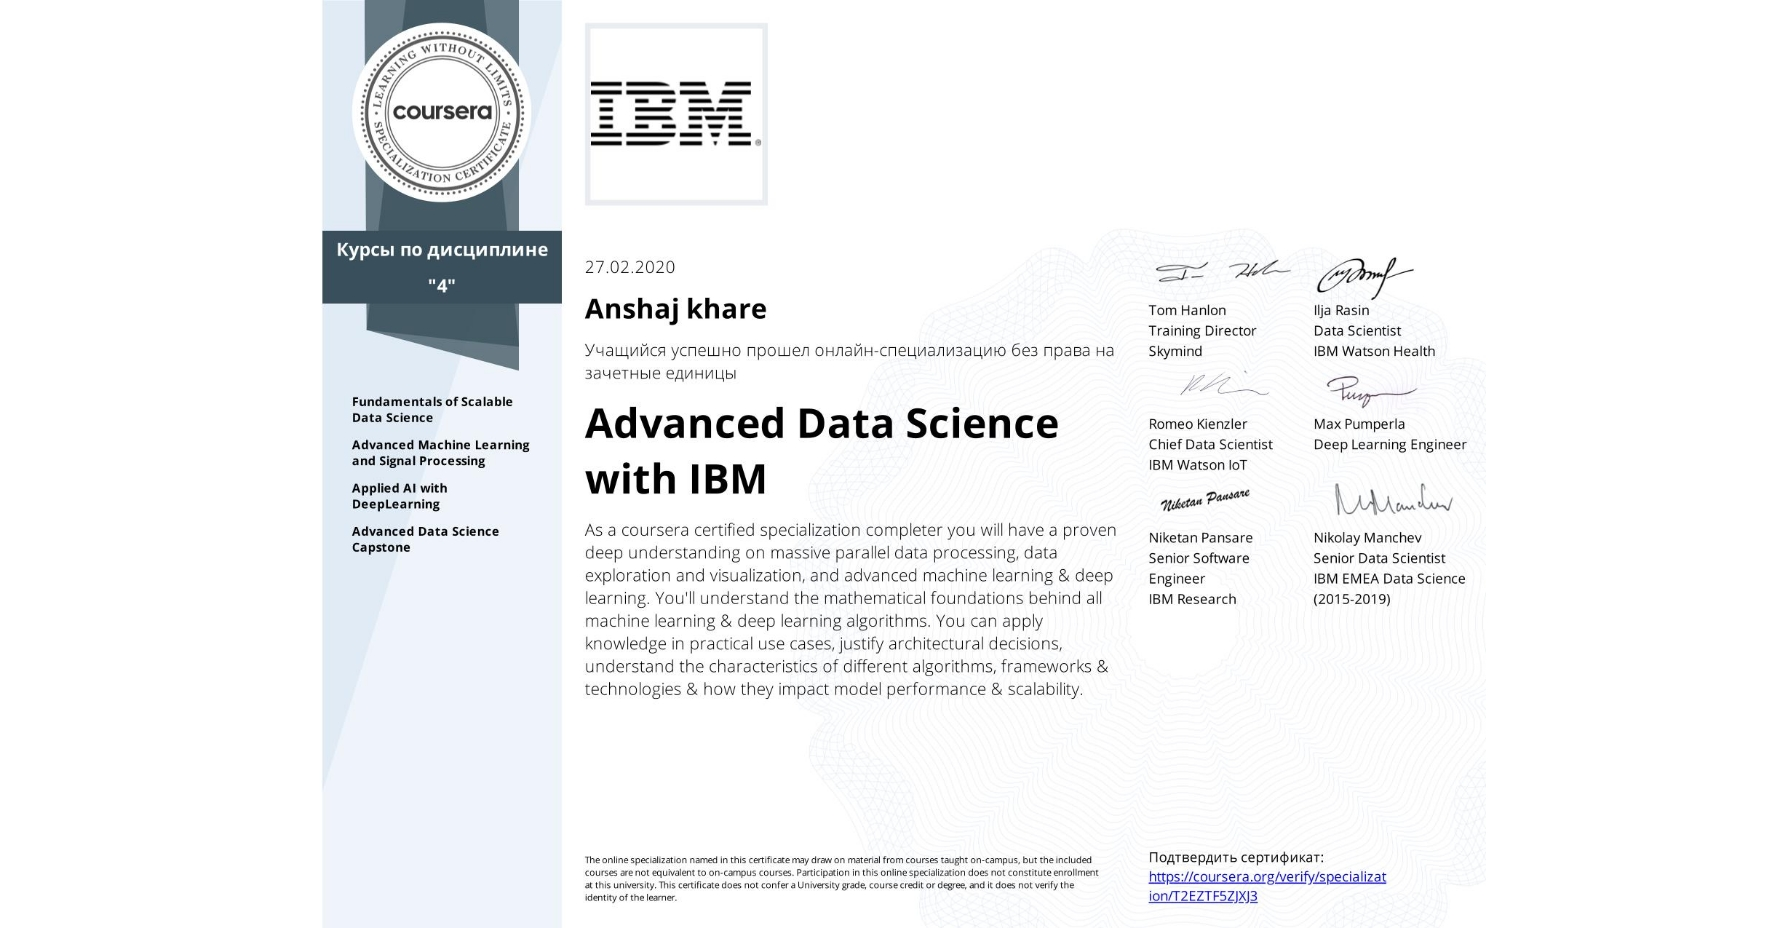 View certificate for Anshaj khare, Advanced Data Science with IBM, offered through Coursera. As a coursera certified specialization completer you will have a proven deep understanding on massive parallel data processing, data exploration and visualization, and advanced machine learning & deep learning. You'll understand the mathematical foundations behind all machine learning & deep learning algorithms. You can apply knowledge in practical use cases, justify architectural decisions, understand the characteristics of different algorithms, frameworks & technologies & how they impact model performance & scalability.